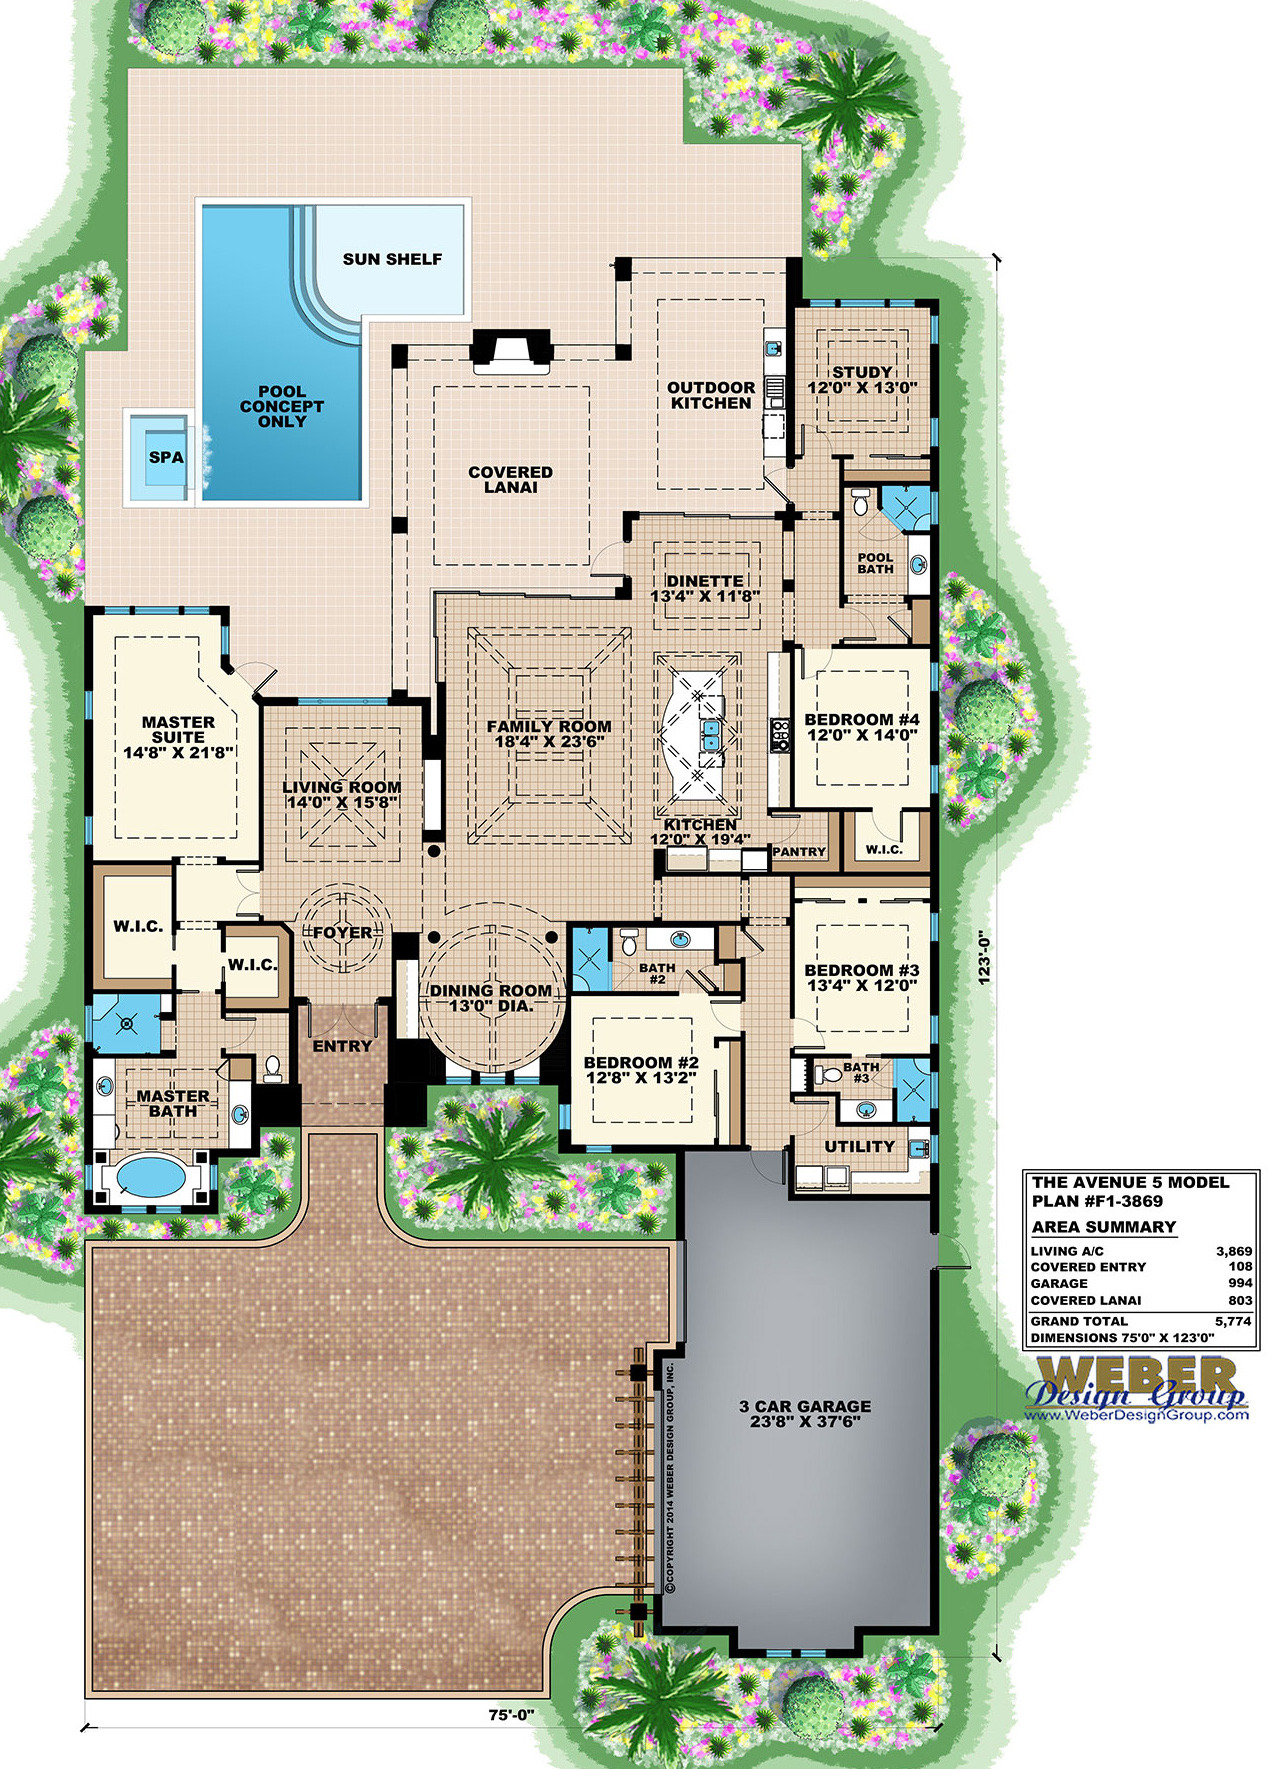 F1 3869 Avenue 5 Floor Plan 1